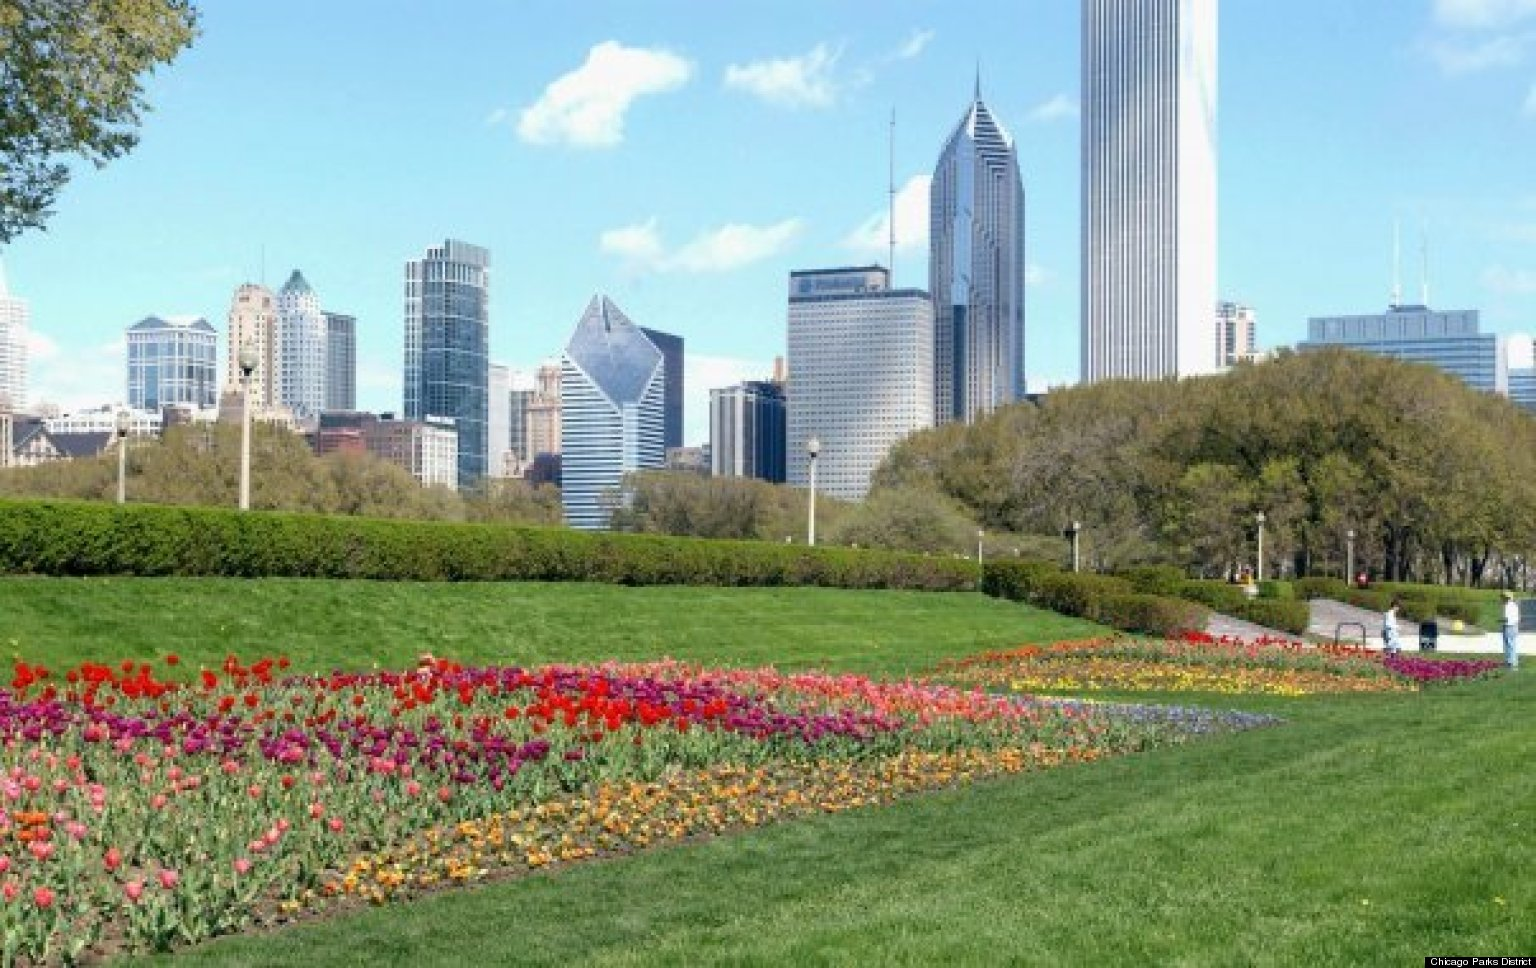 Garden Chicago: Leftover NATO Funds To Help Improve Chicago Parks